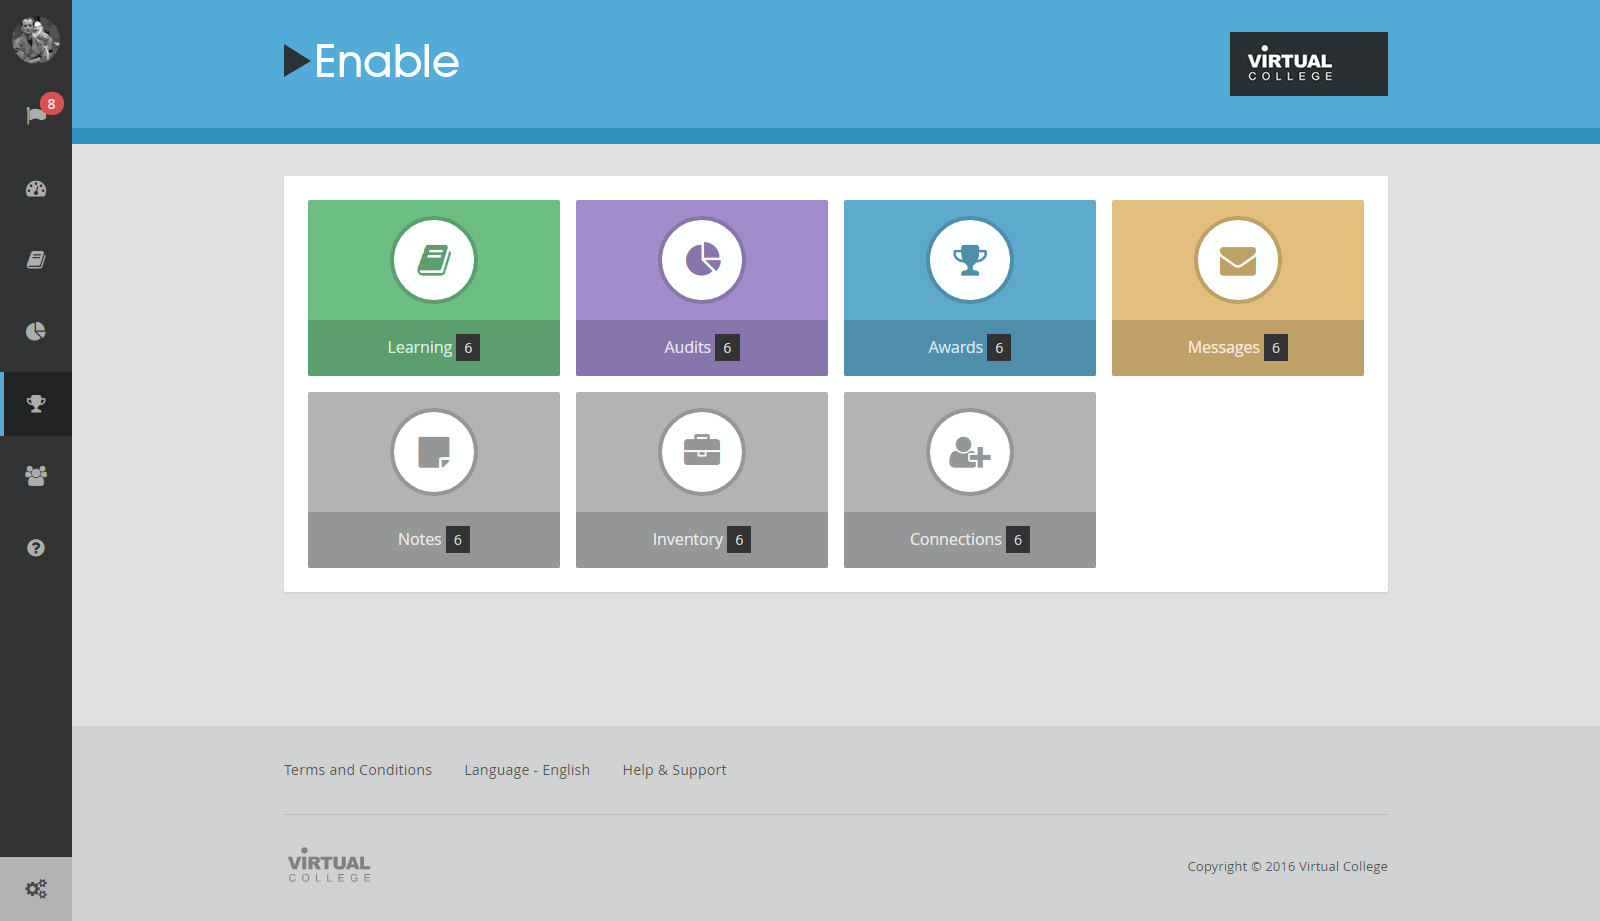 Enable LMS allows users to personalize tasks and tiles on the dashboard